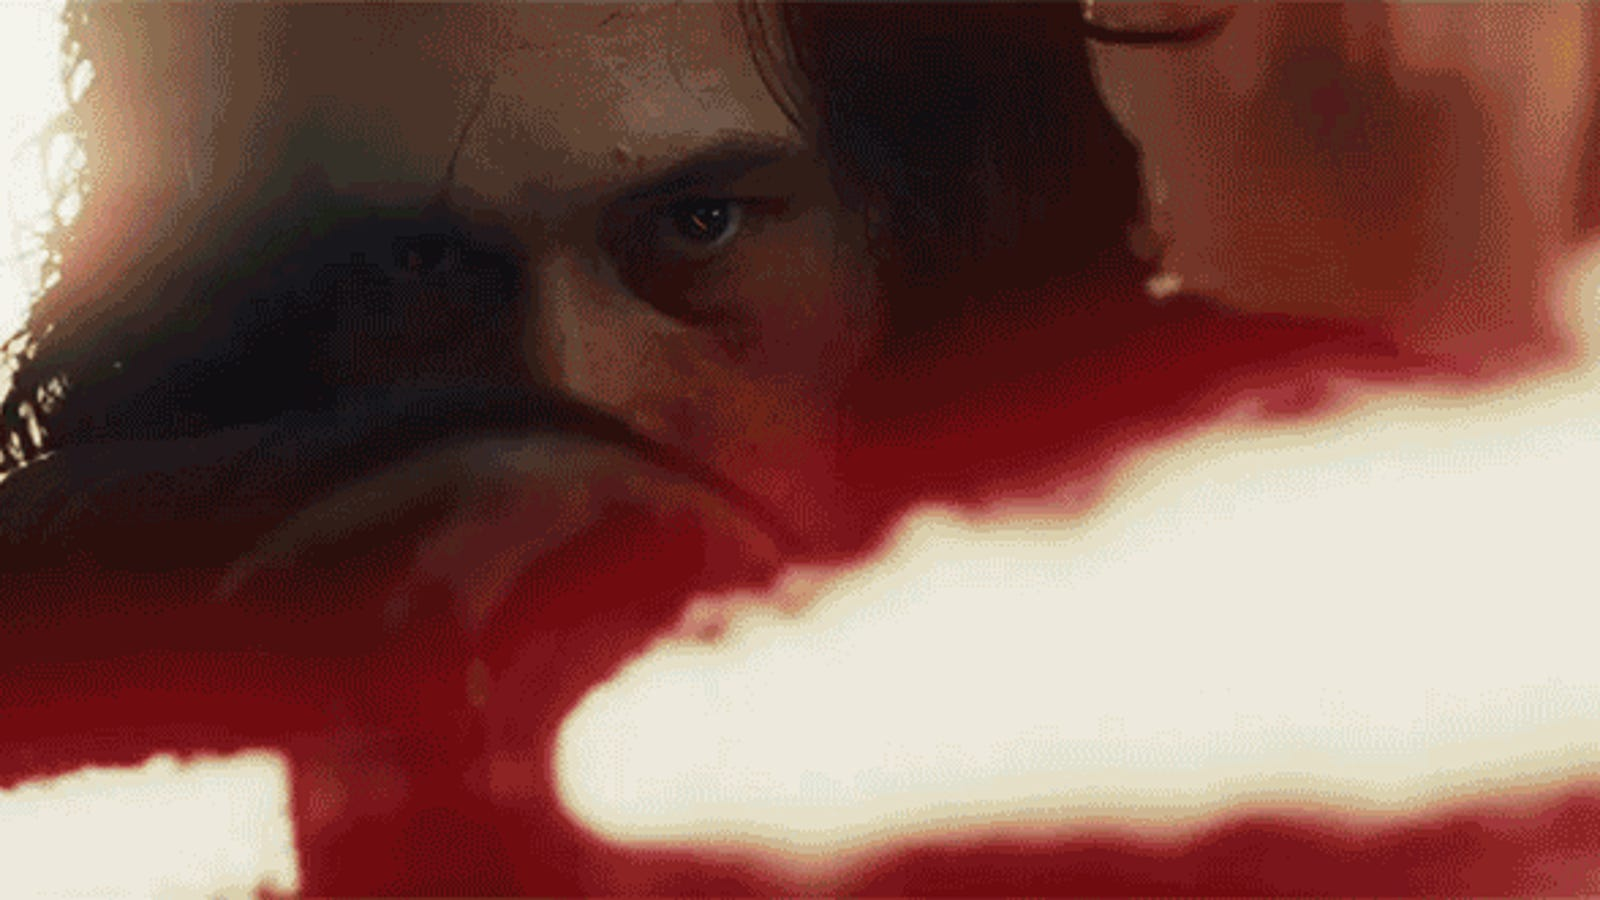 The Glorious First Trailer For Star Wars: The Last Jedi Is Here